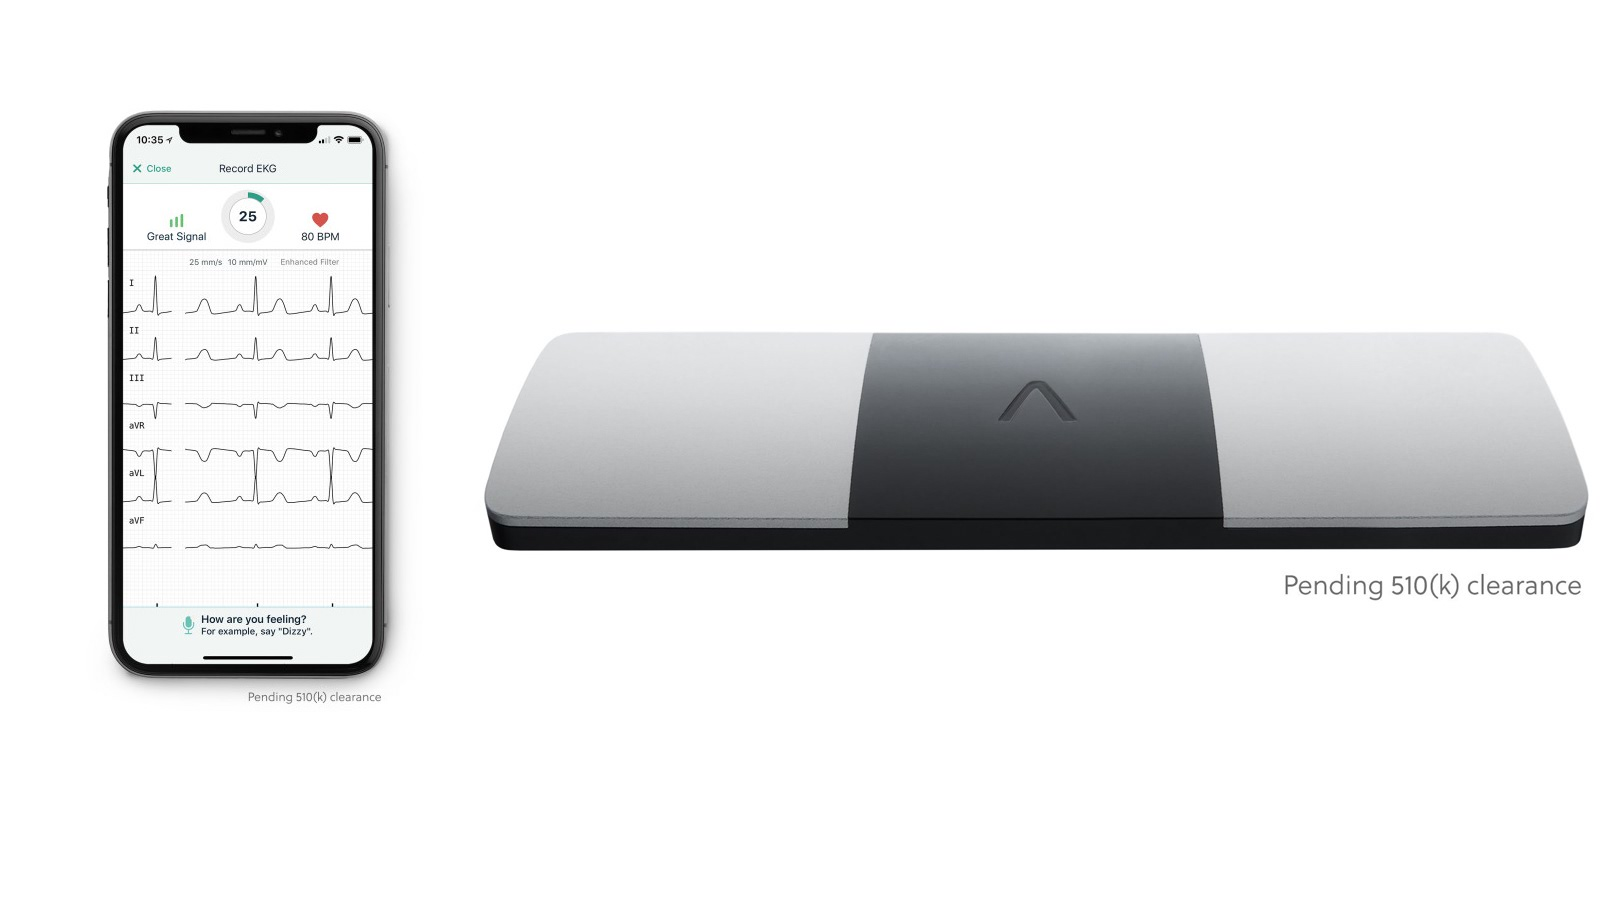 alivecor responds to apple watch ecg w 6 lead reader capable of detecting 100 diseases